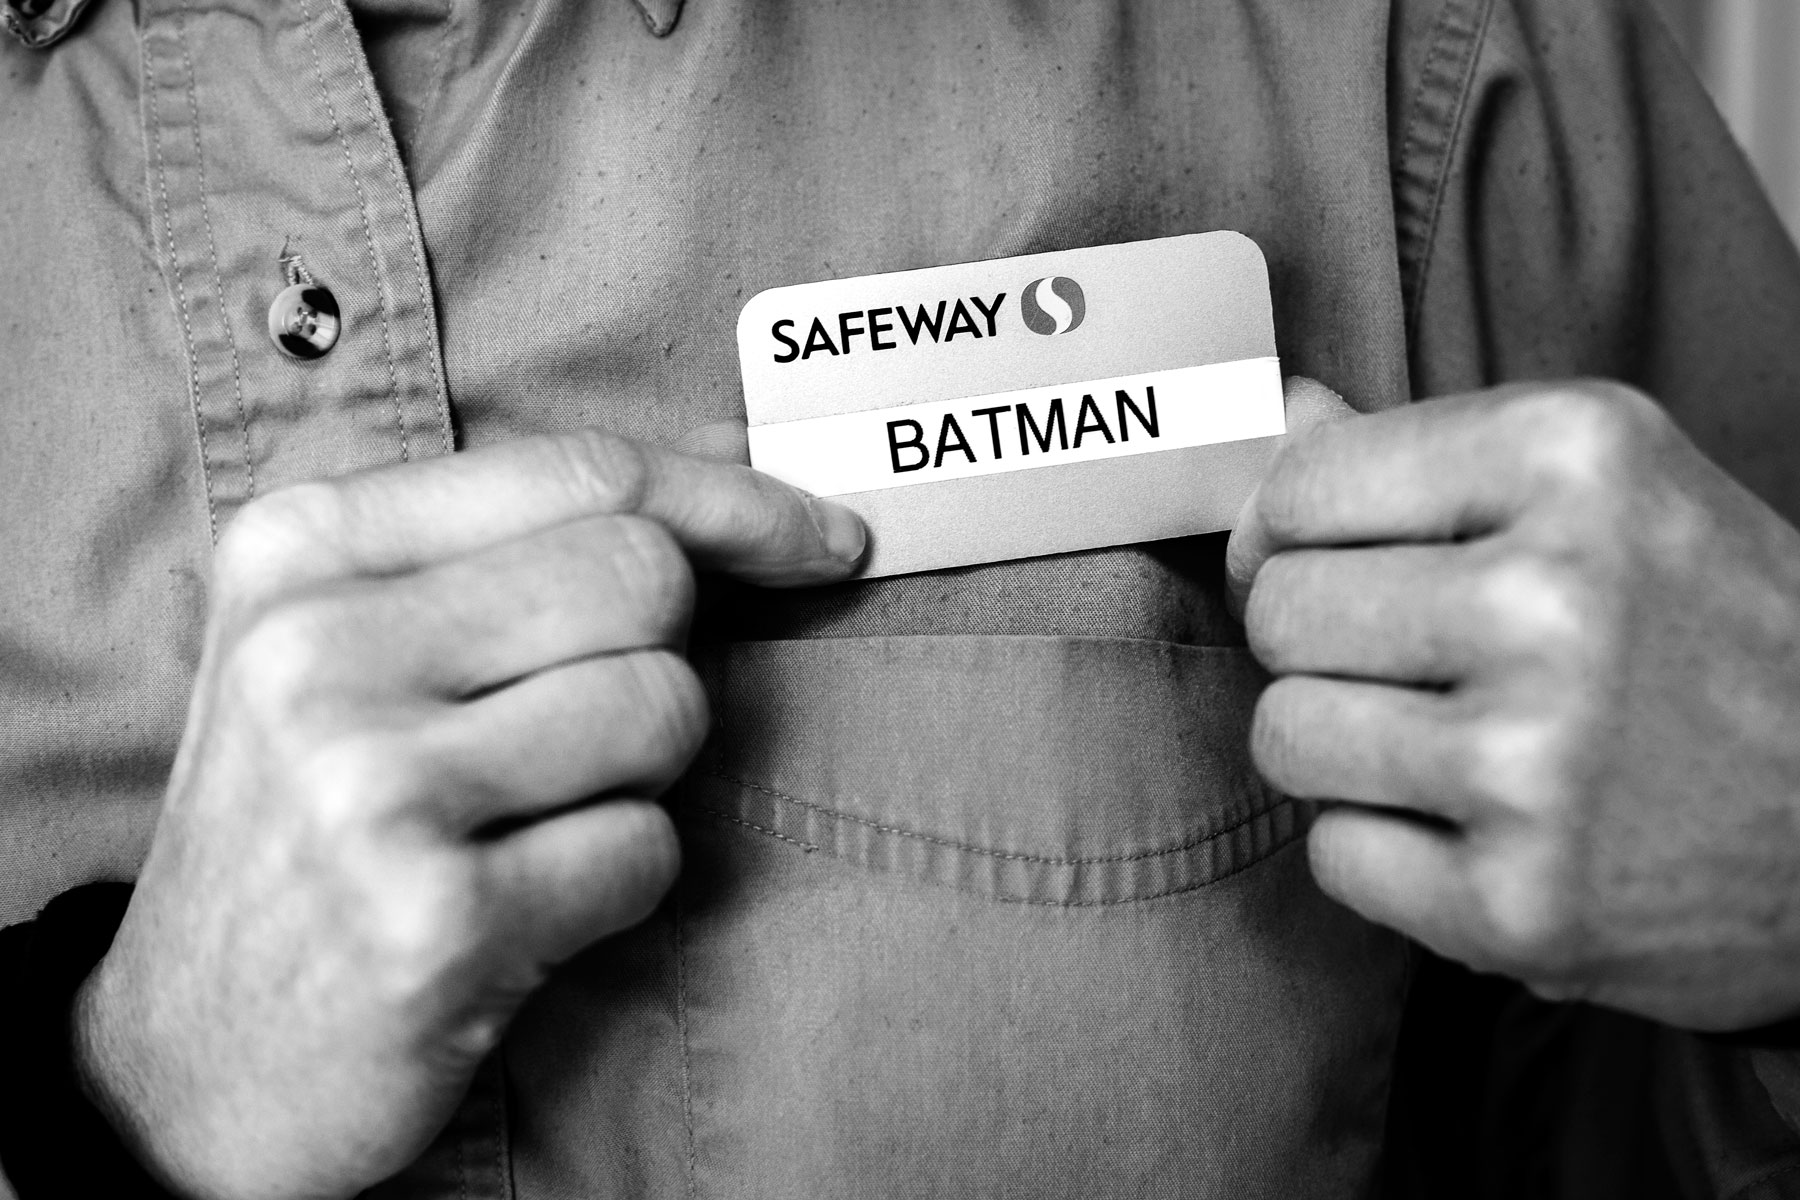 50/365 - If you don't know already, my family and I are huge Batman fans. My brother has a special name tagthat he wears to work every now and then when he is feeling...batty. I would love to walk into a store and see something like this on an employee that I didn't know! I love people who have a sense of humor!